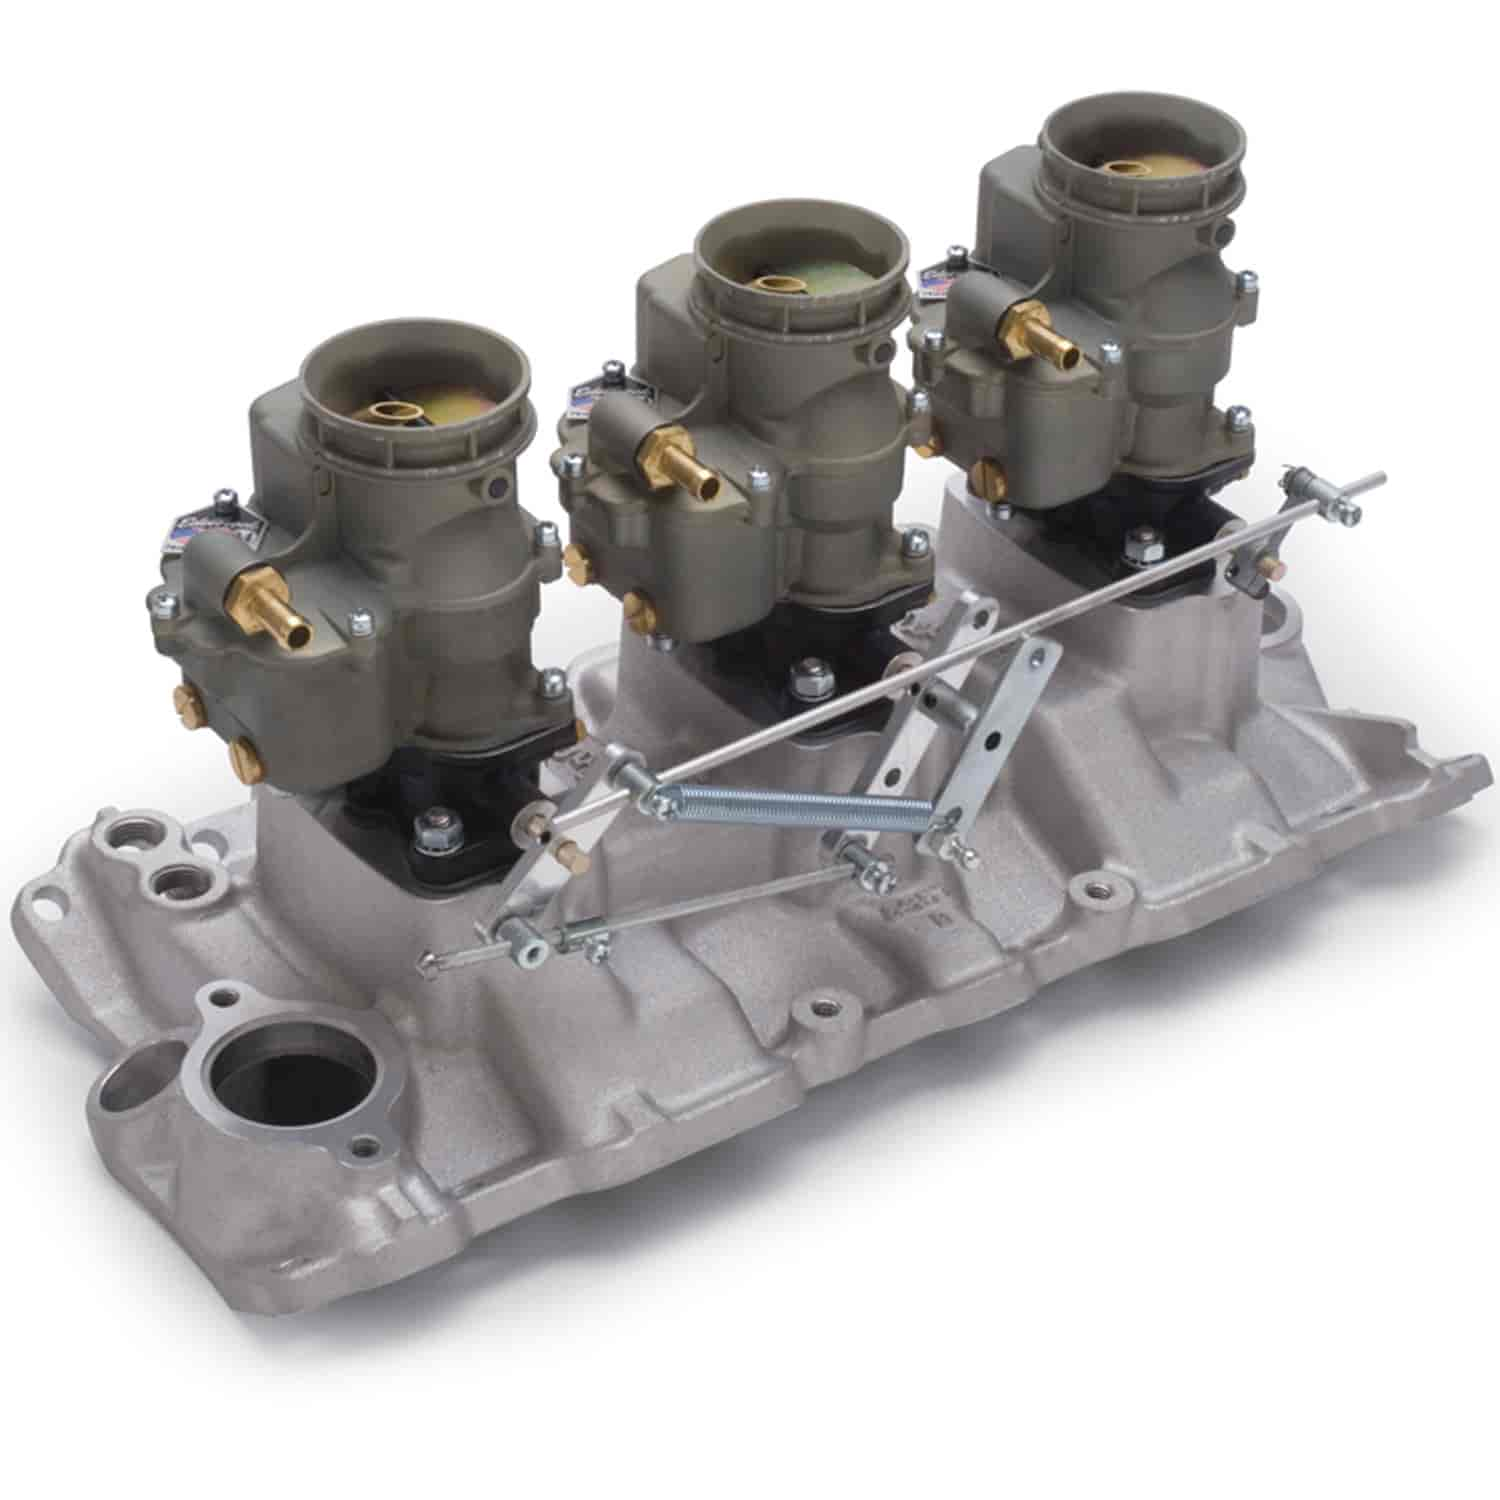 Edelbrock 2015 - Edelbrock 94 Two-Barrel Carburetors & Carb/Manifold Kits